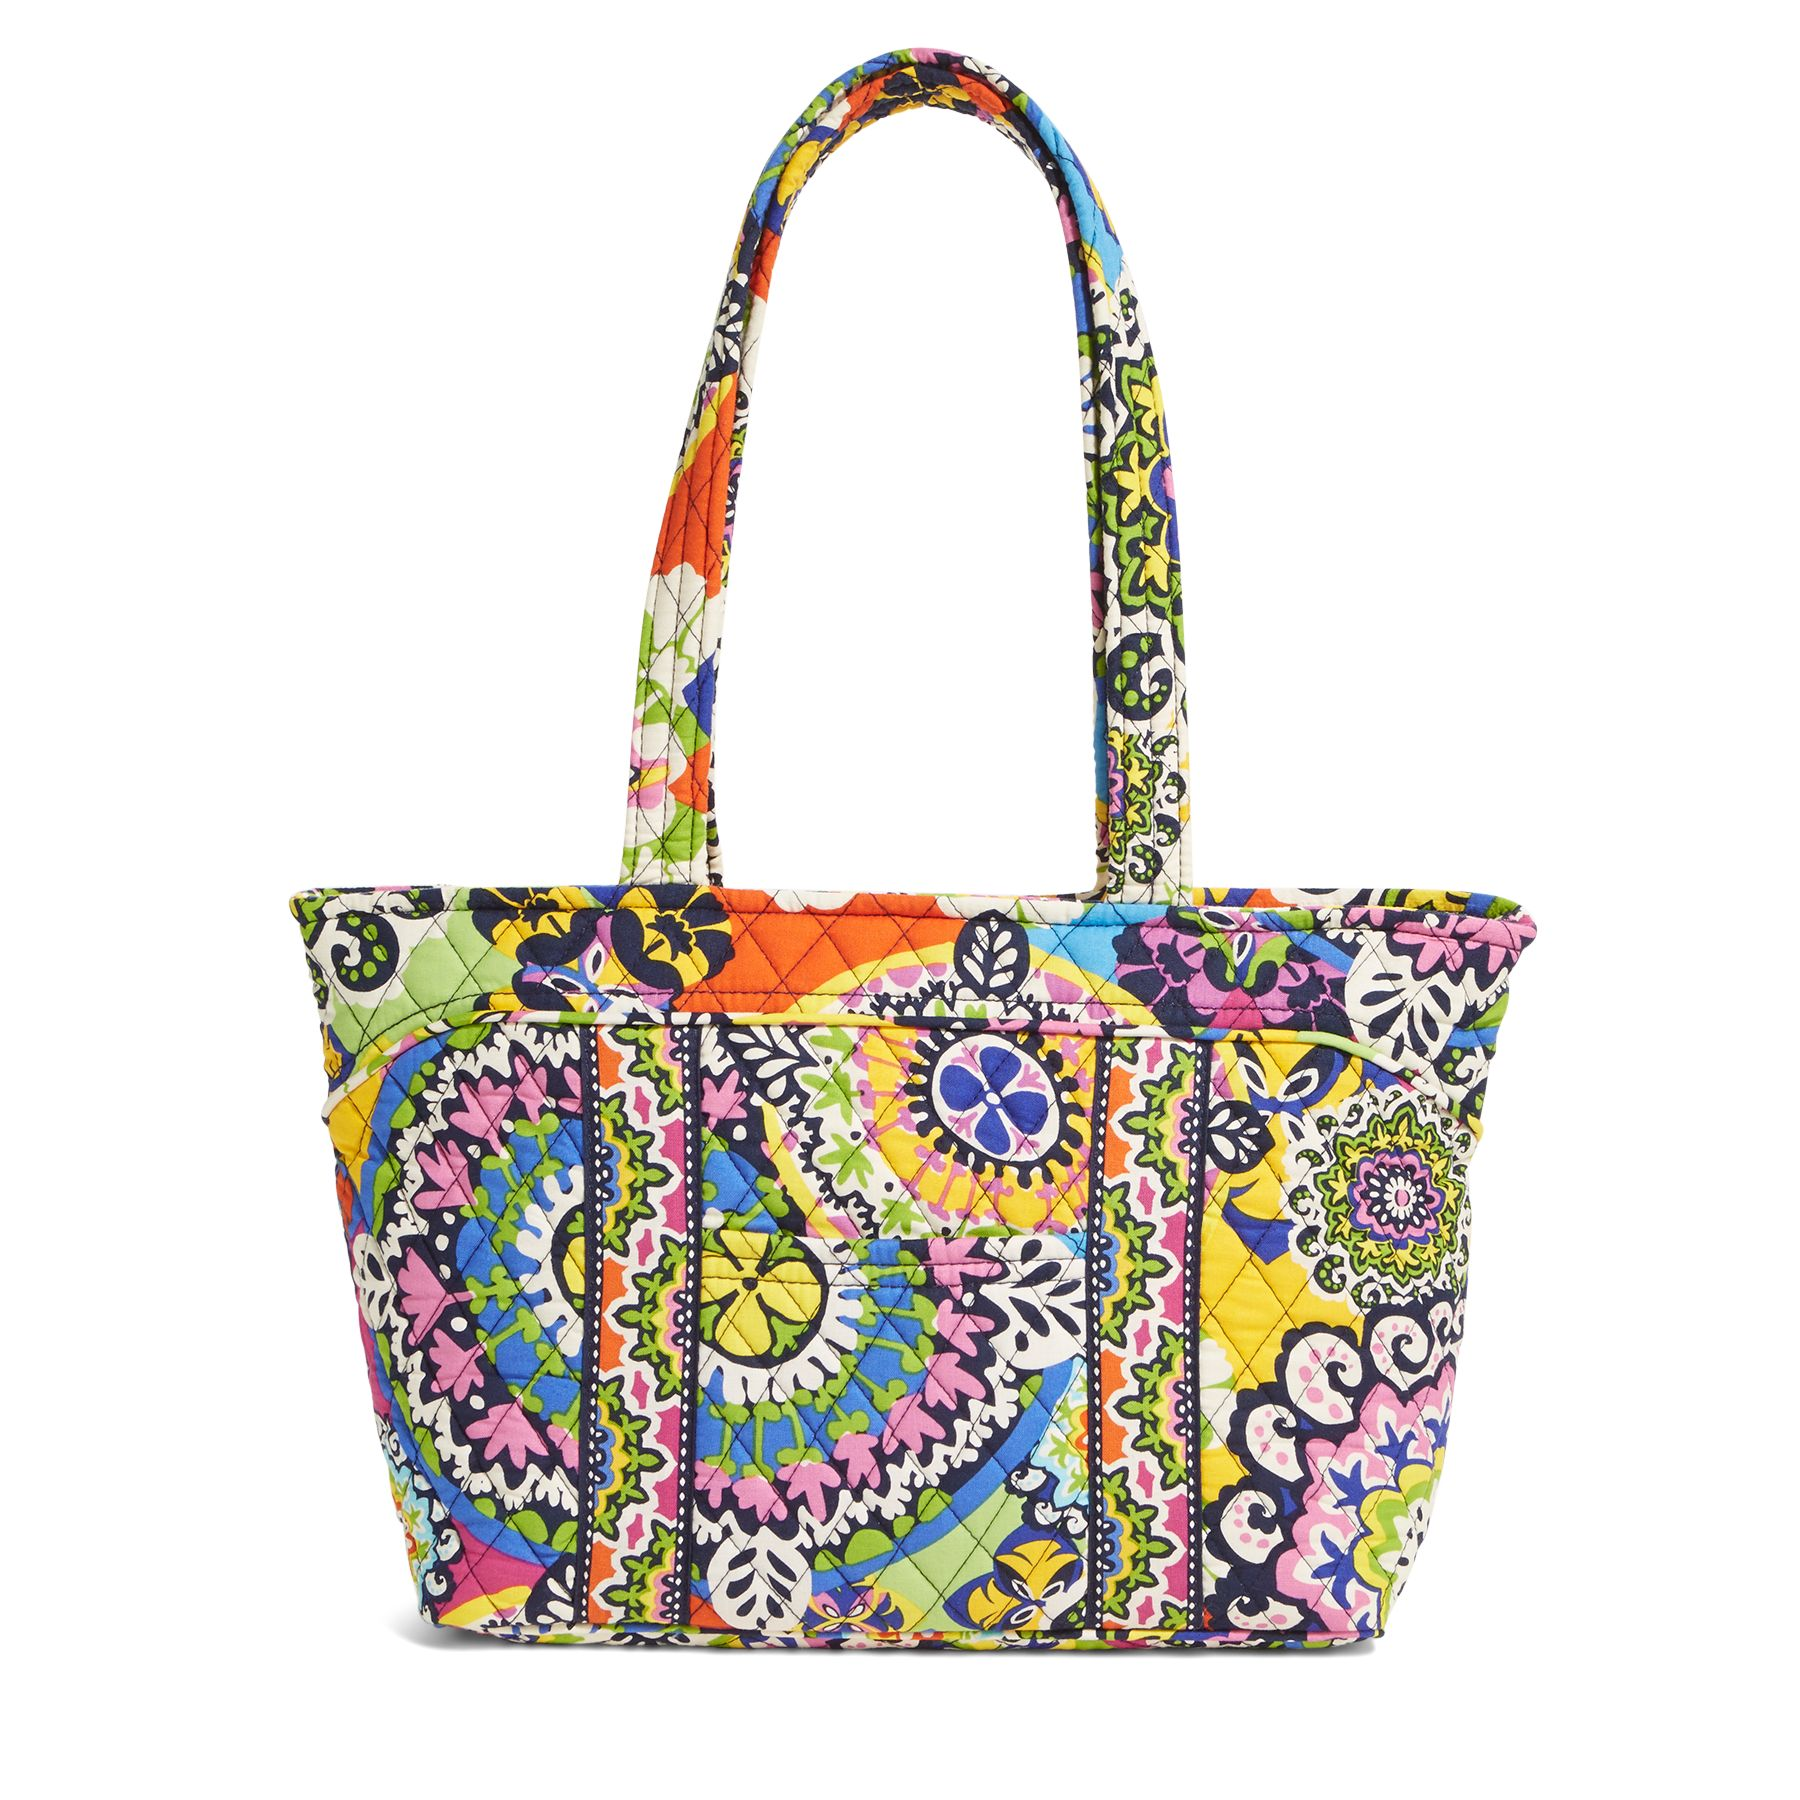 Vera Bradley Mandy Shoulder Bag in Rio